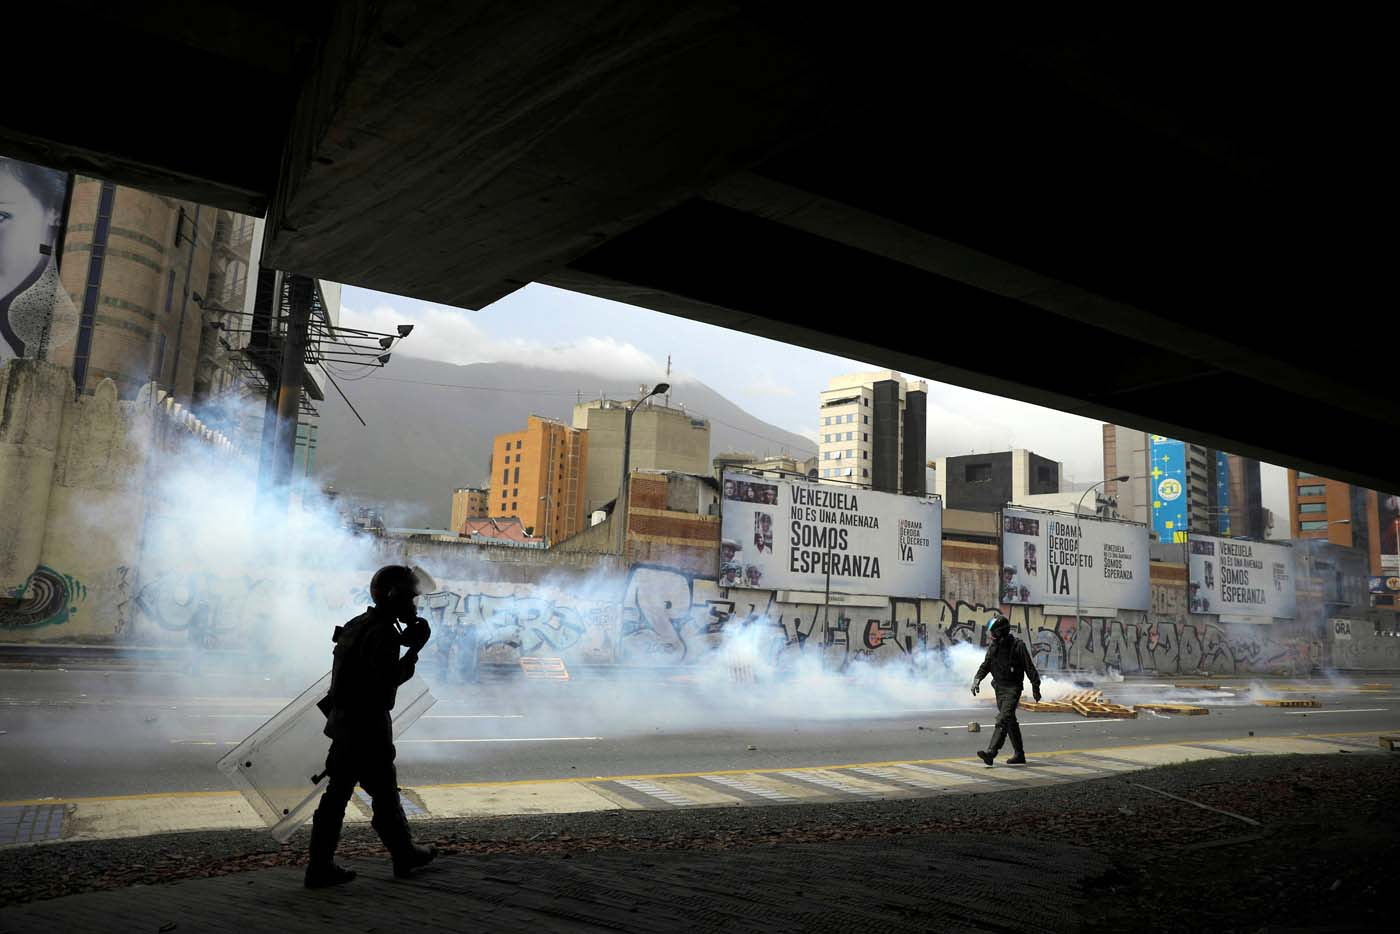 Riot security forces clash with demonstrators during a rally called by health care workers and opposition activists against Venezuela's President Nicolas Maduro in Caracas, Venezuela May 22, 2017. REUTERS/Carlos Barria